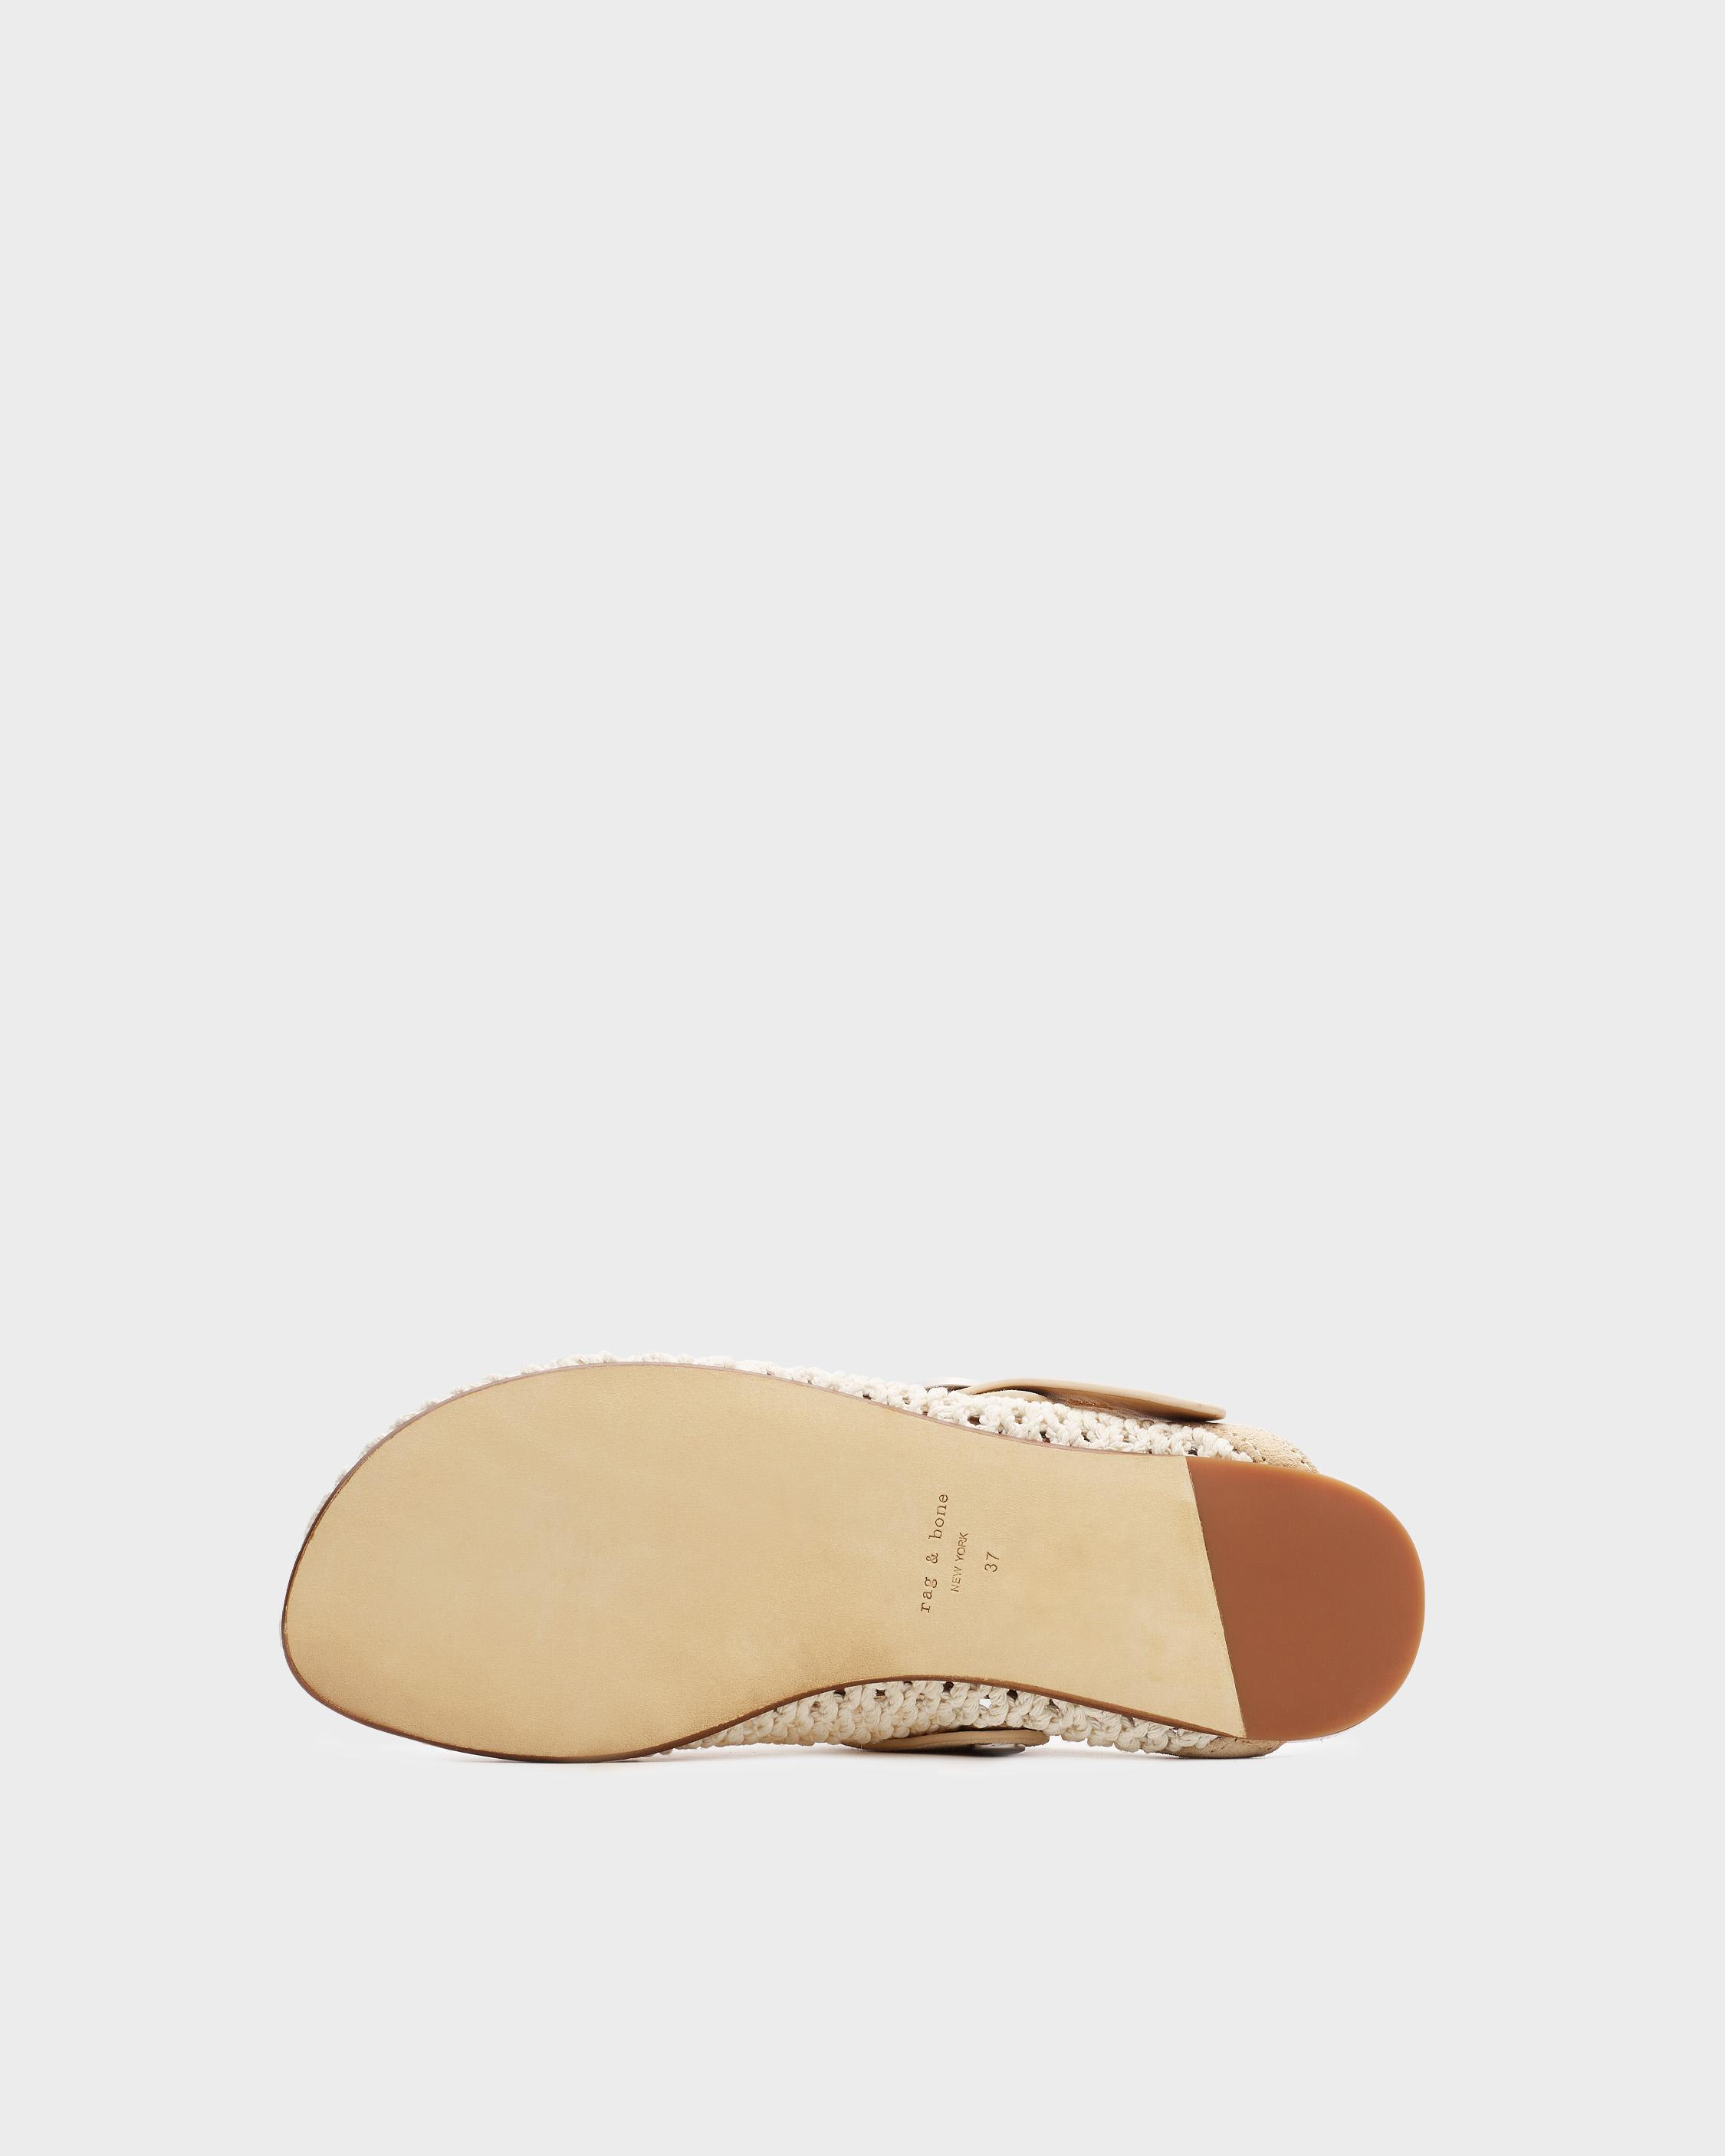 Ansley slide - leather and recycled materials 3